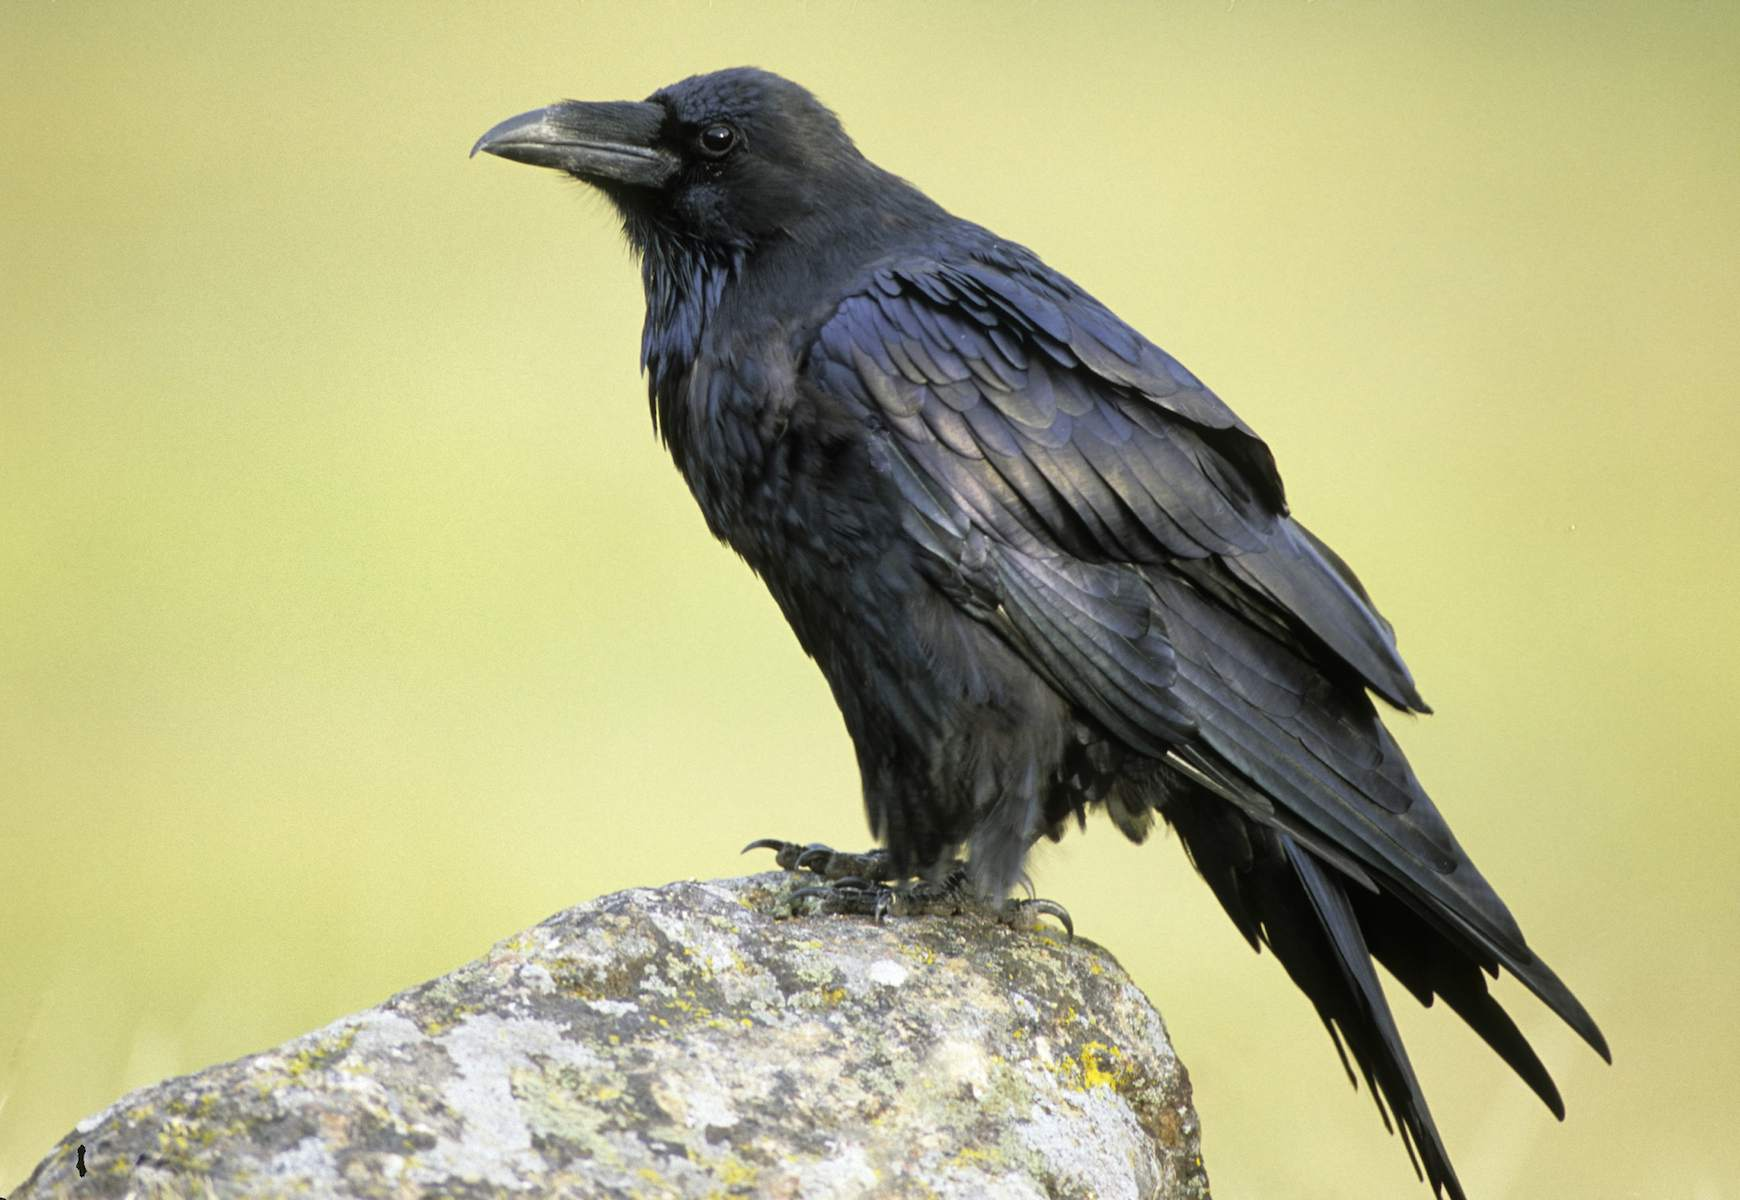 Raven standing on a rock